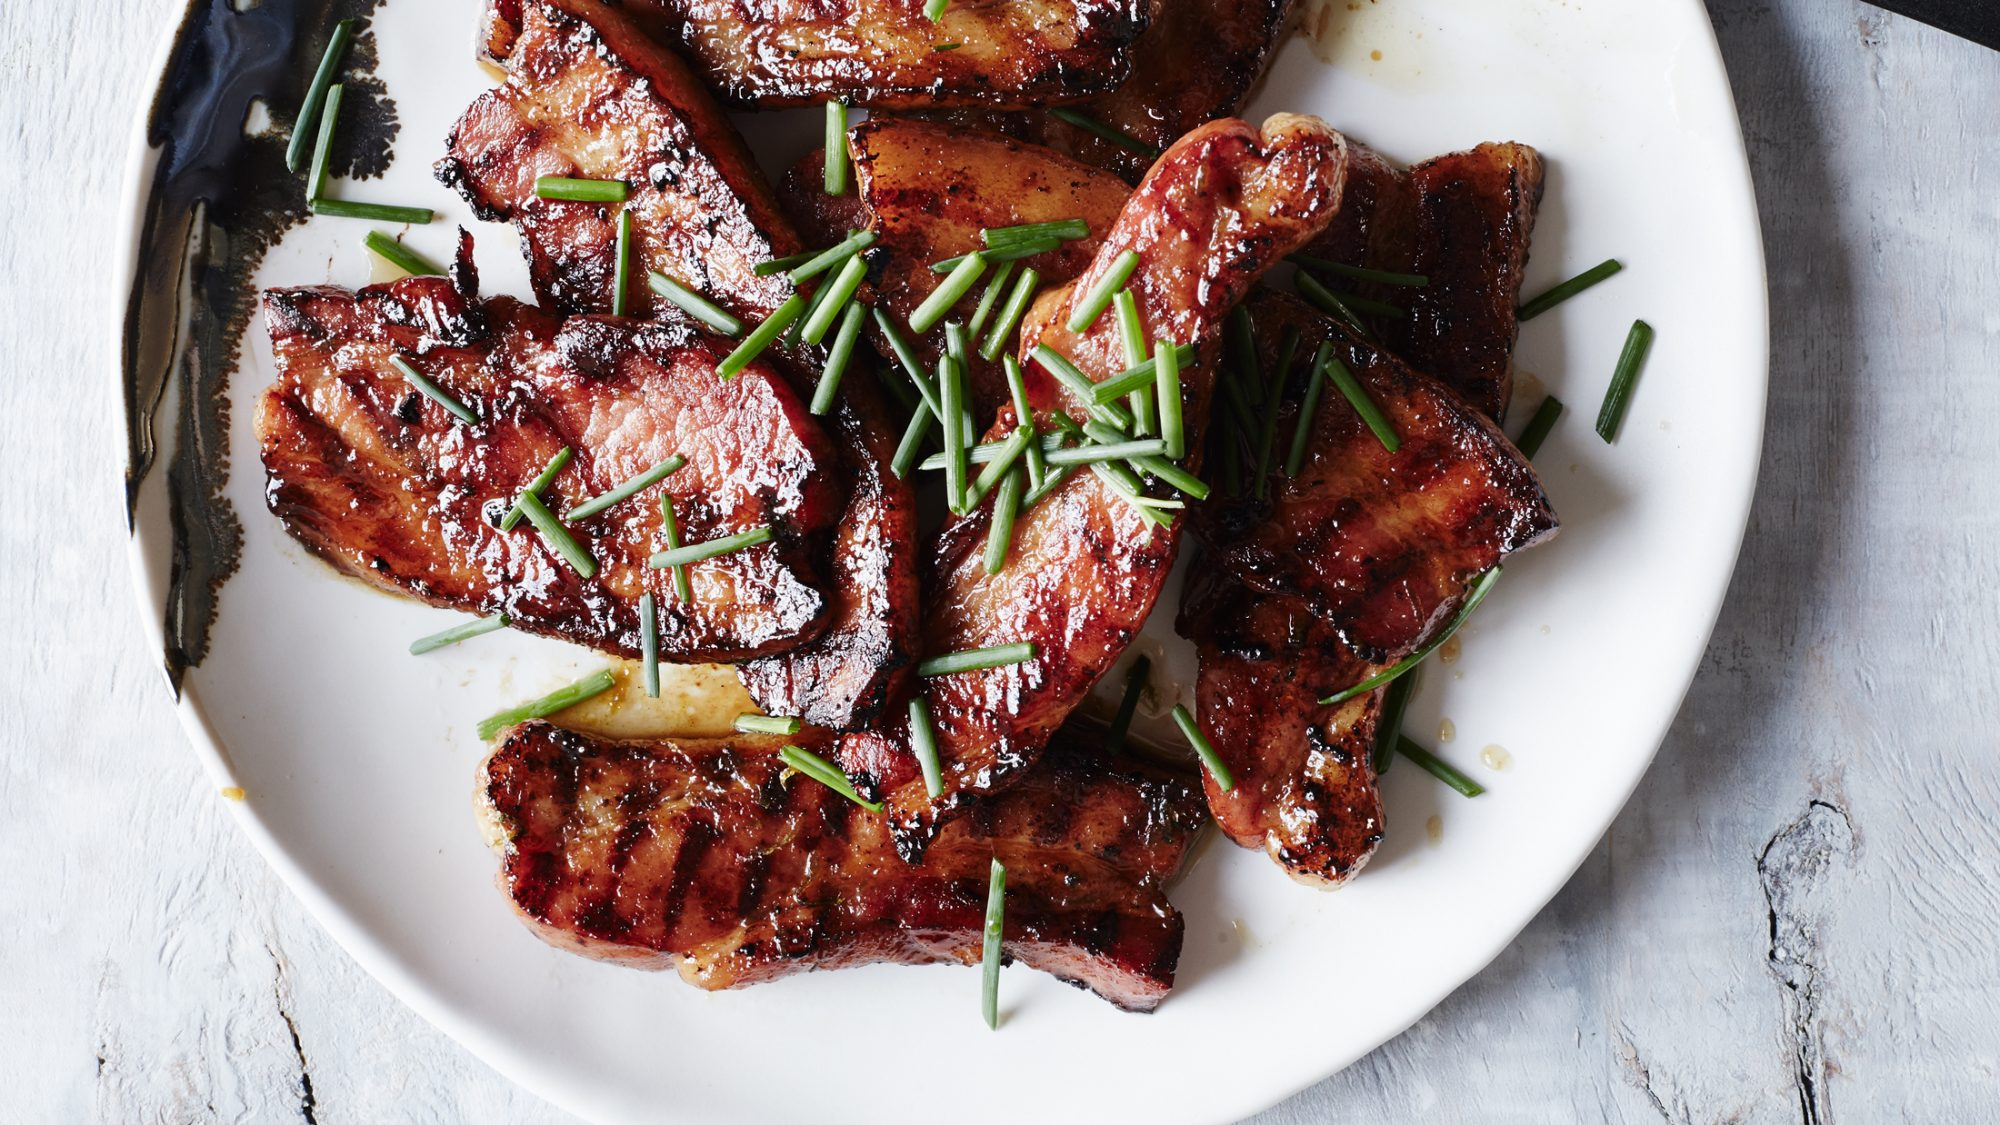 7 Recipes That Prove Maple Syrup and Pork Are Meant for Each Other